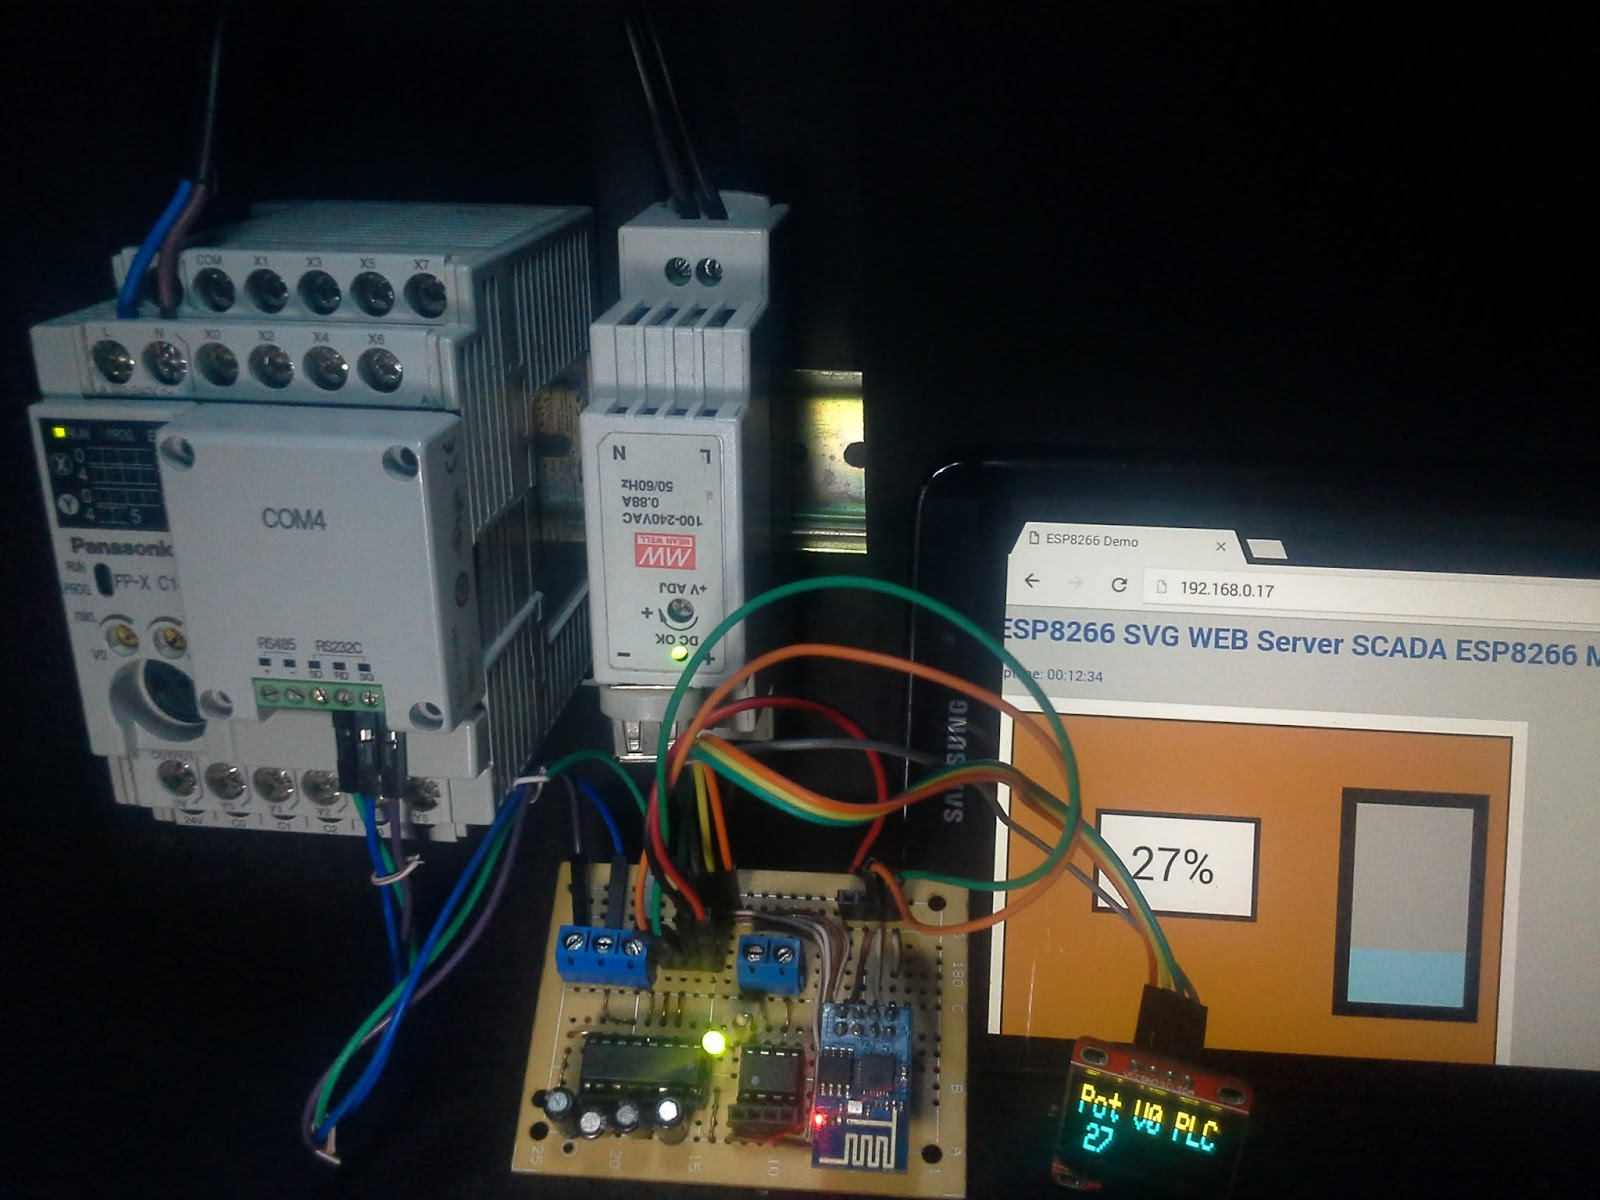 Esp8266 Scada Svg Modbus Rtu Display Oled Plc Panasonic Fpx C14r Wiring Potentiometer To With Previously Programmed Strategy In Control Fpwin His Pro Software It Is Planned Create A Monitoring Solution Concerning